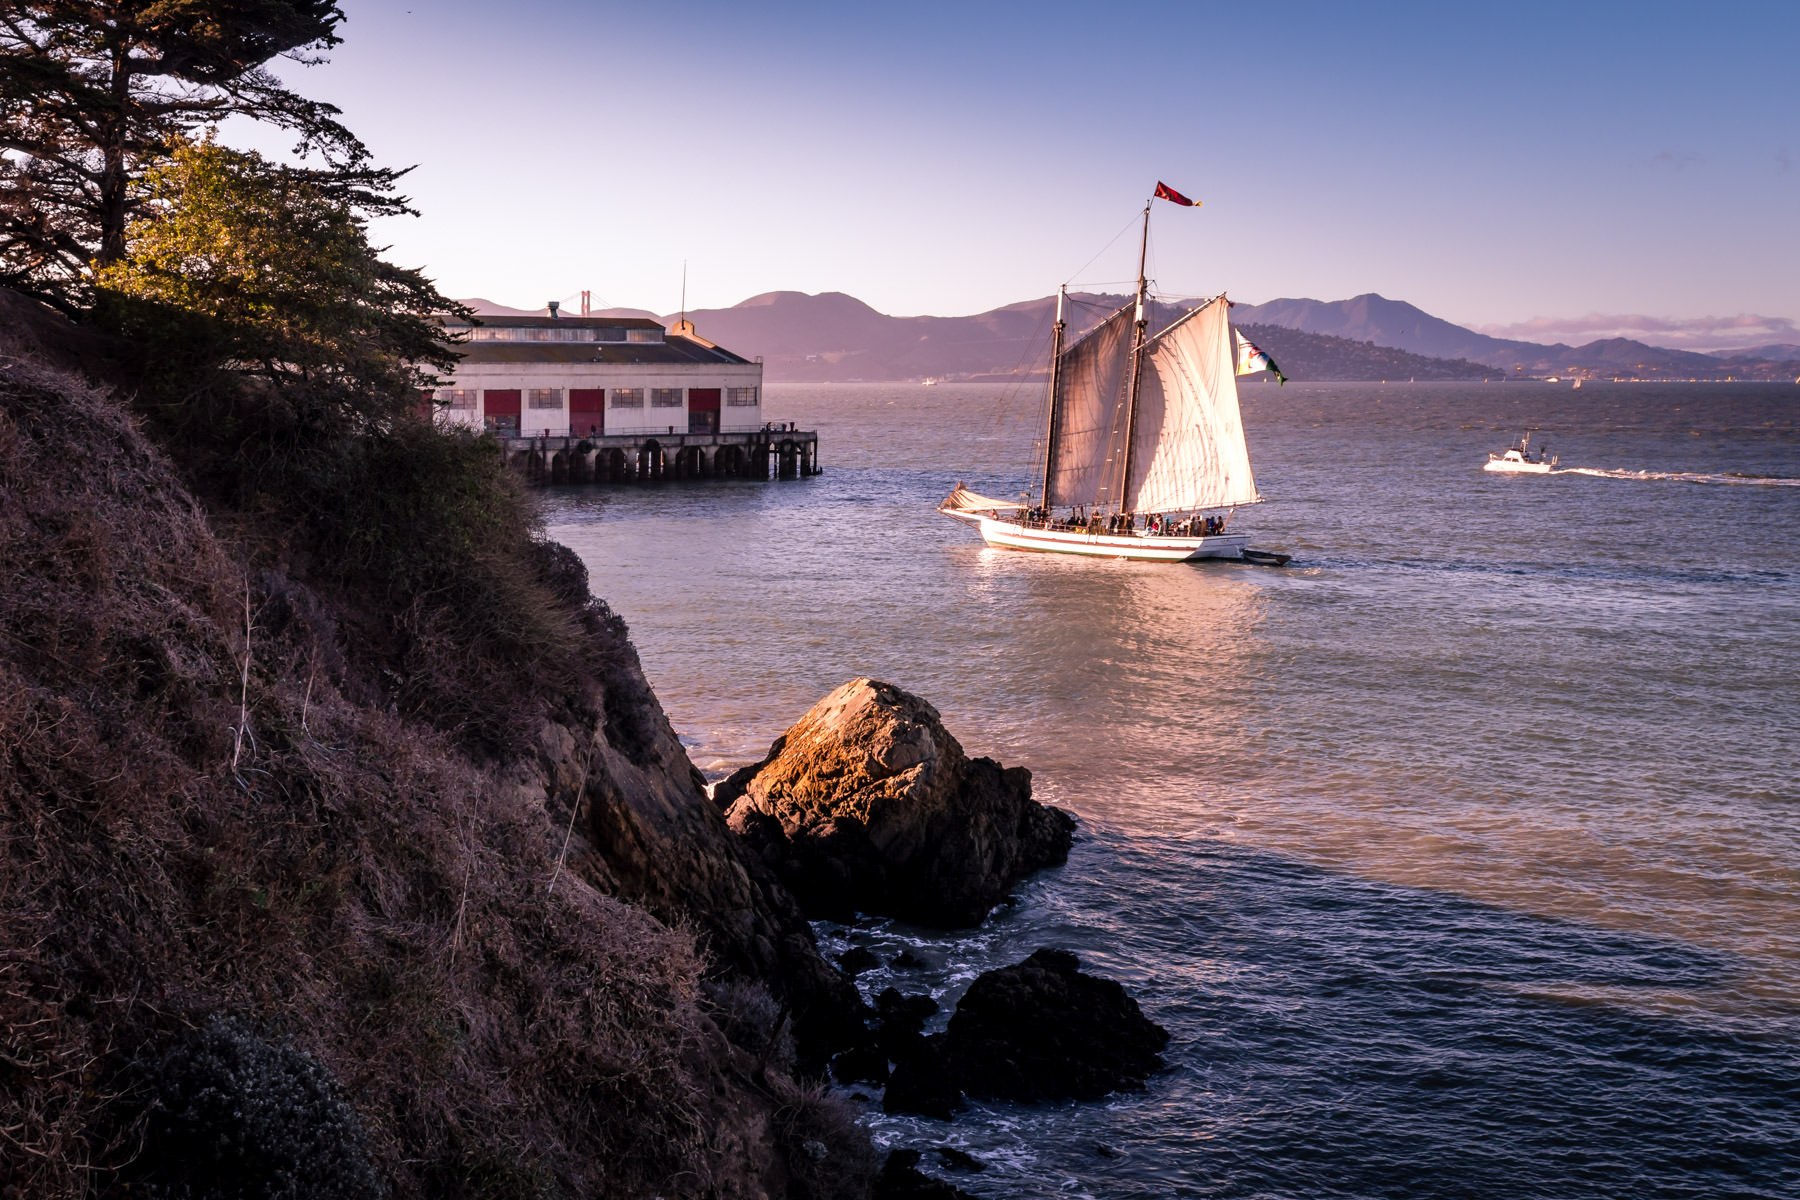 The 1891 scow schooner Alma, in the collection of the San Francisco Maritime National Historical Park, sails near the Festival Pavilion at the Fort Mason Center for Arts & Culture in San Francisco Bay.